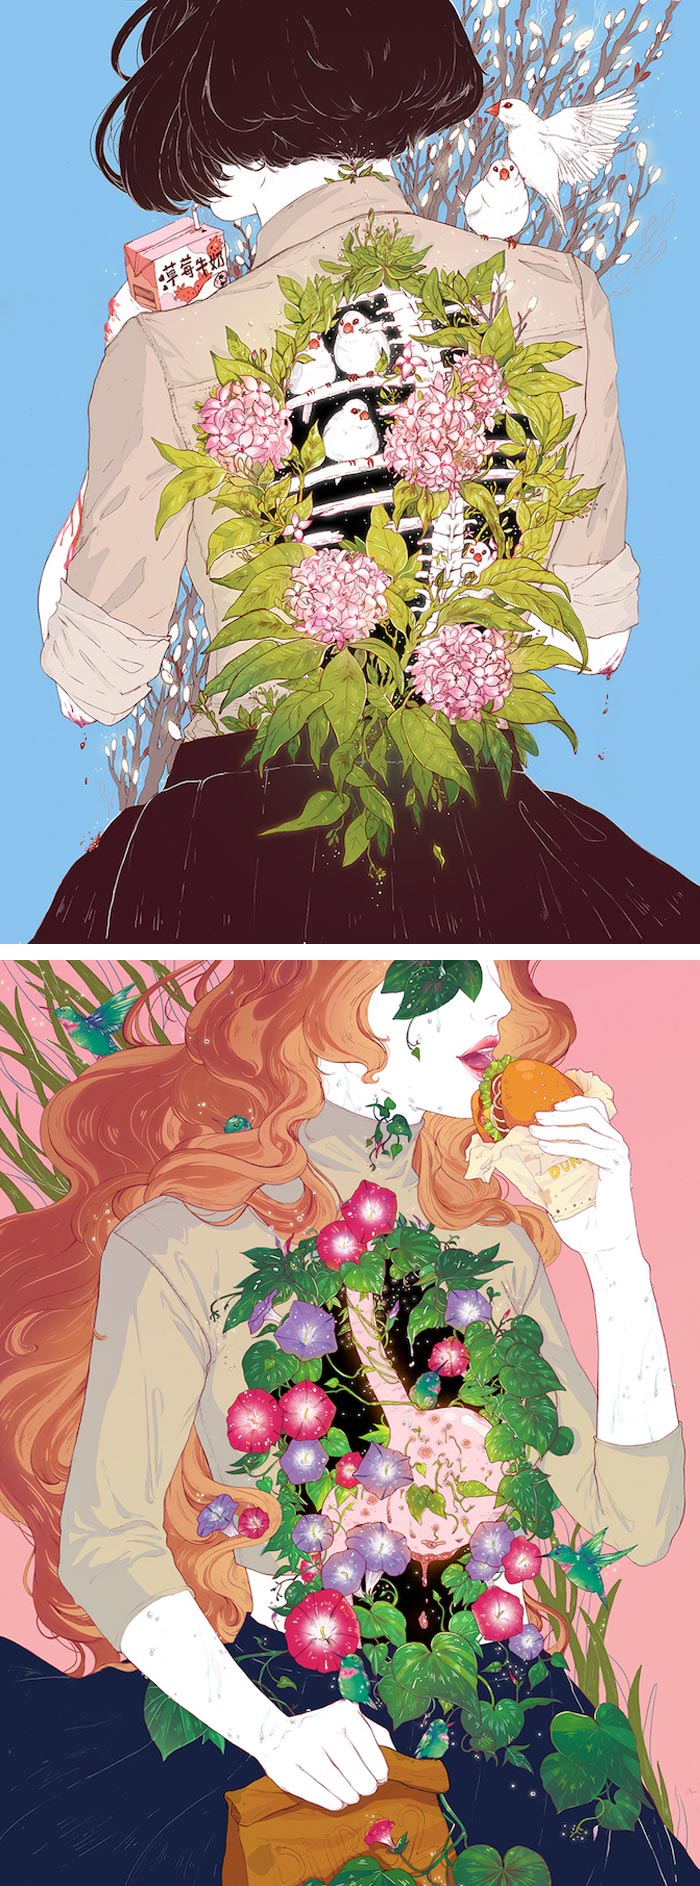 Illustration by Aster Hung